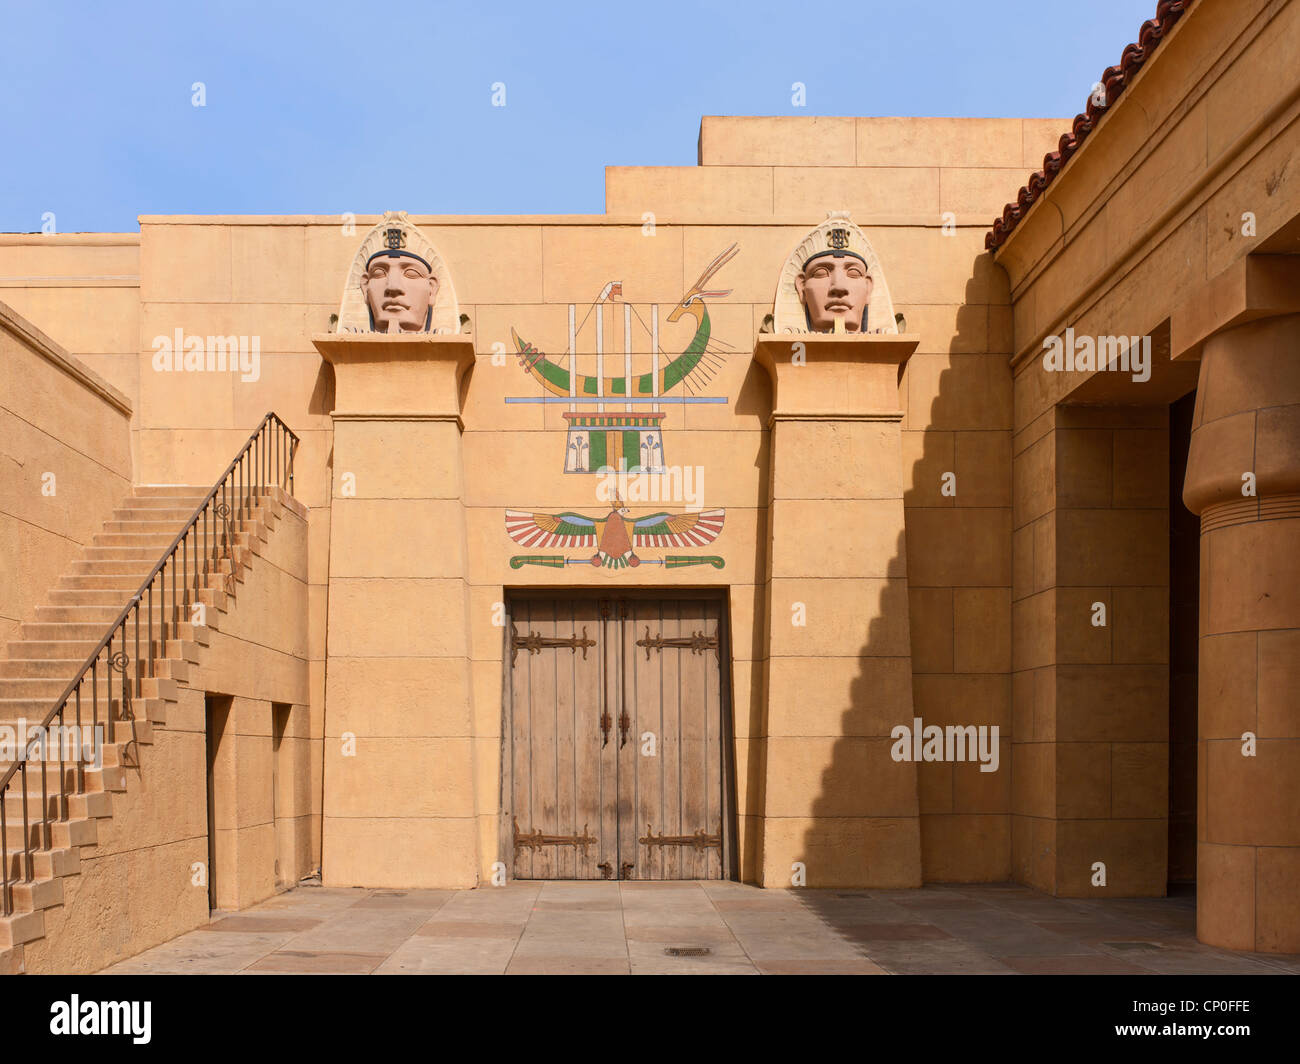 Grauman's Egyptian Theatre, Hollywood, Los Angeles - Stock Image